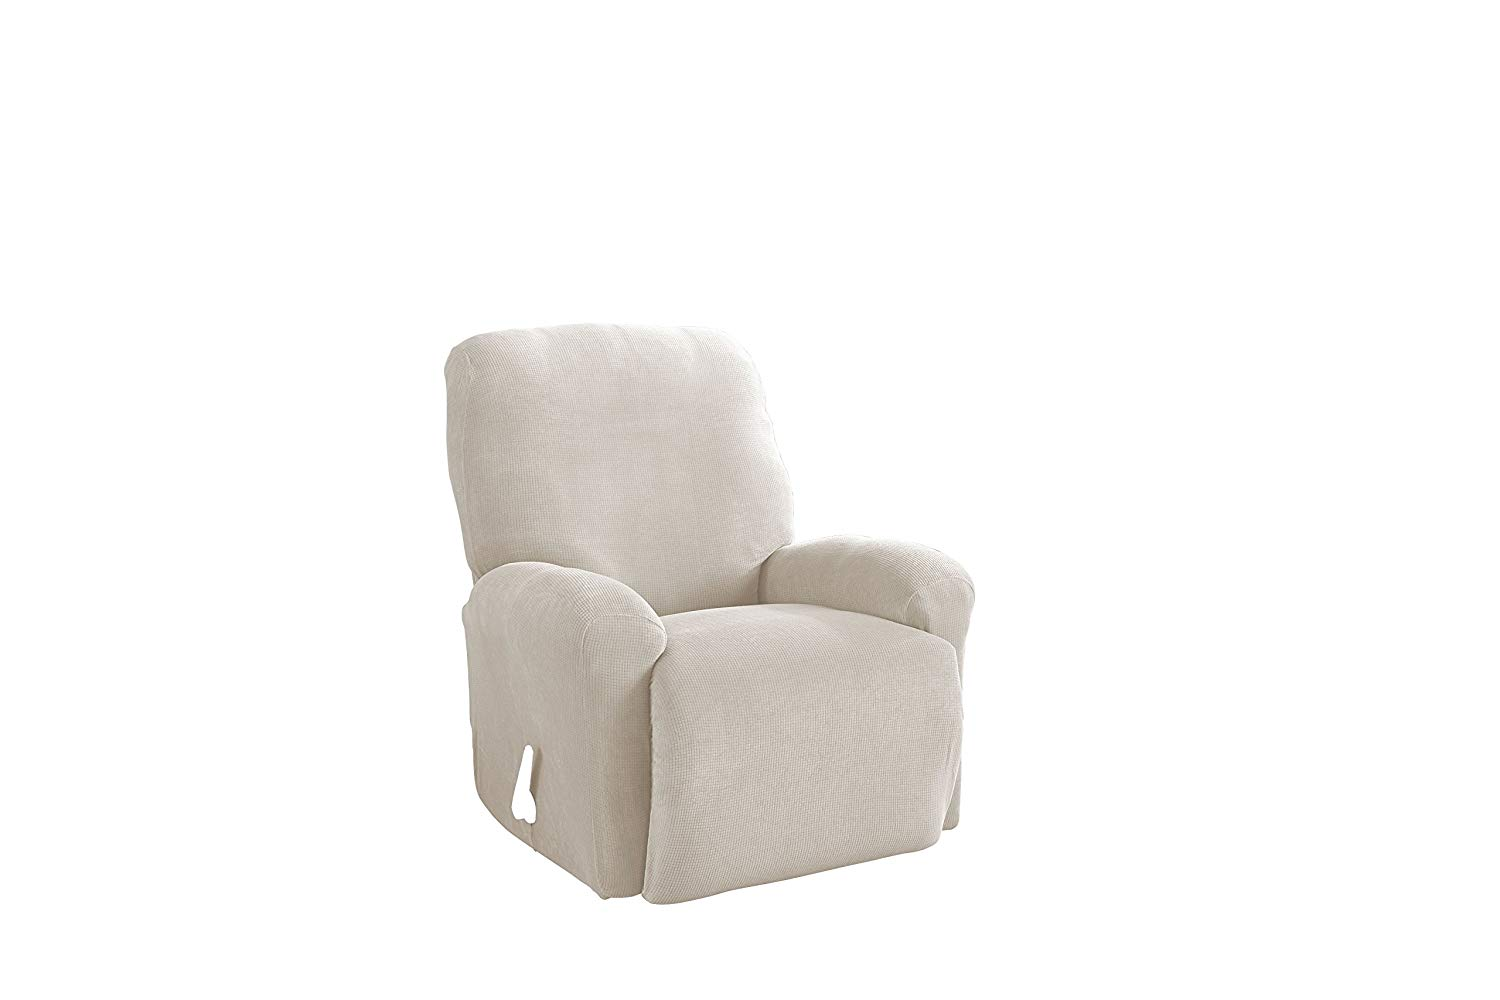 CHUN YI 1-Piece Stretch Spandex Chair Slip Covers